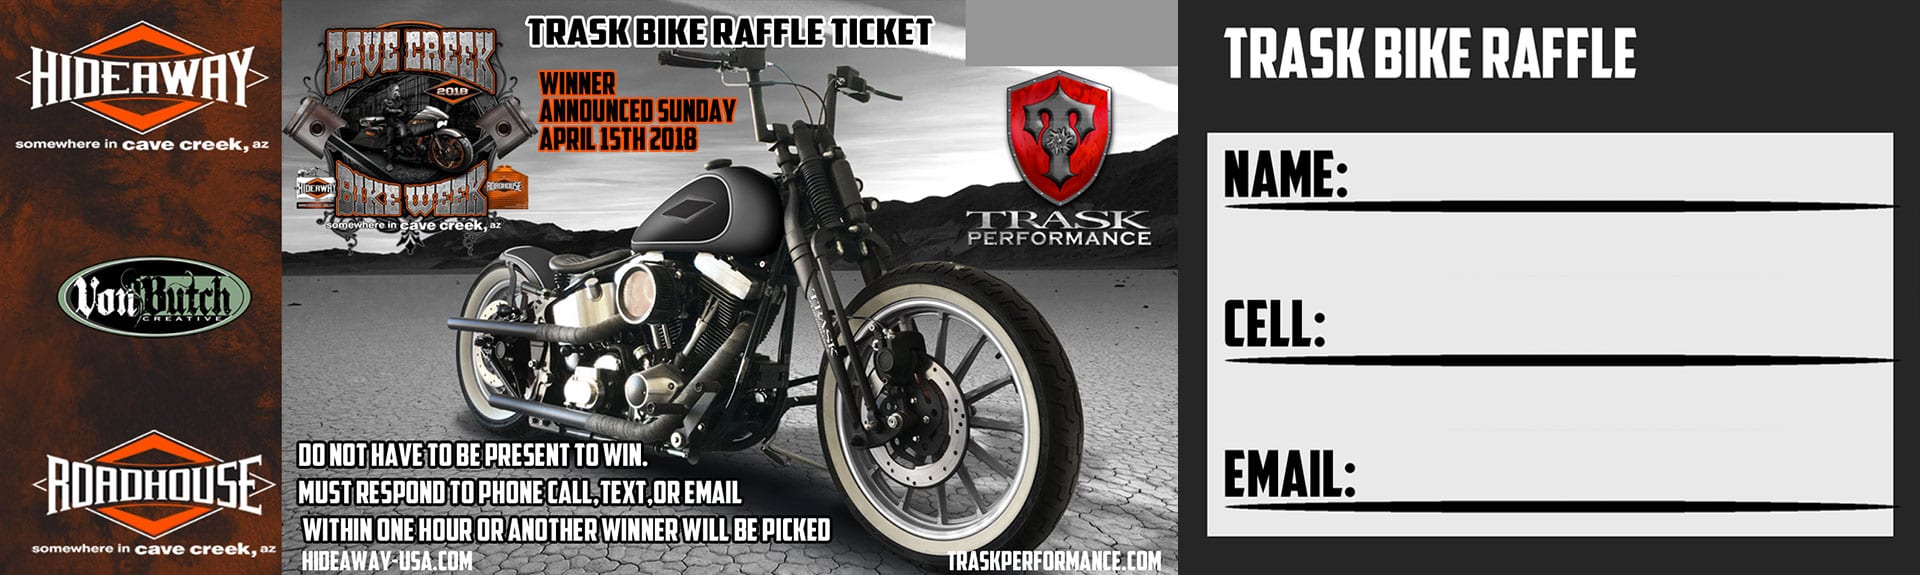 Trask Bike Raffle - Win This Bike - All Proceeds Go To Charity